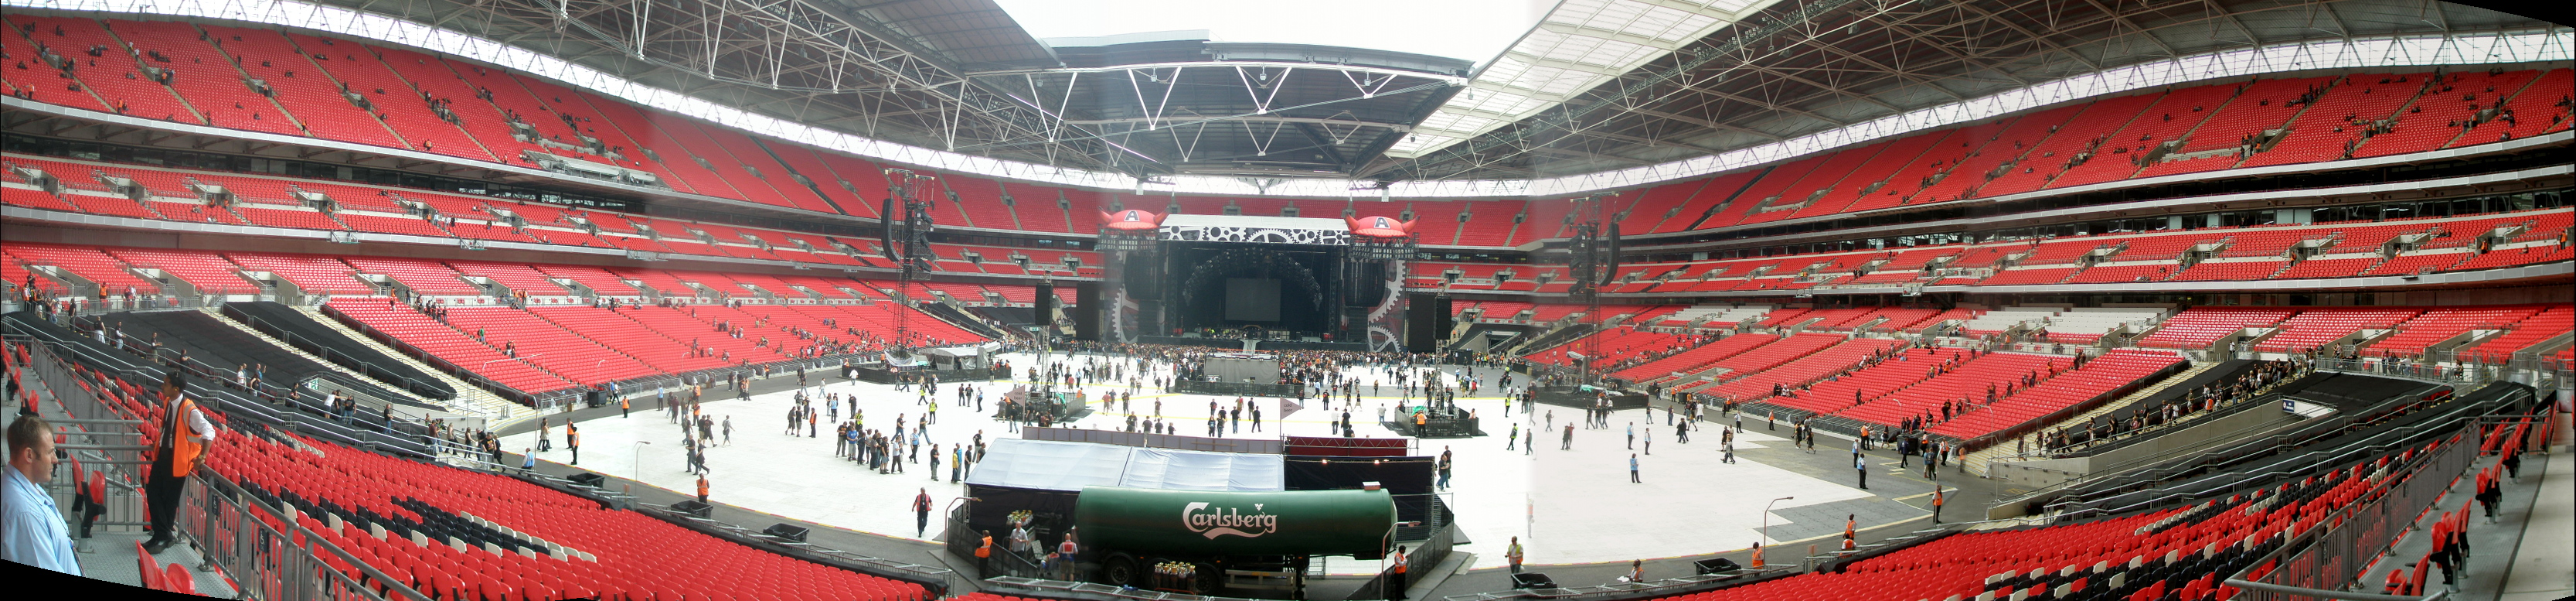 wembley stadium essay The new wembley national stadium was envisioned to be one of the largest and extraordinary we will write a custom essay sample on wembley stadium specifically for you for only $1638.